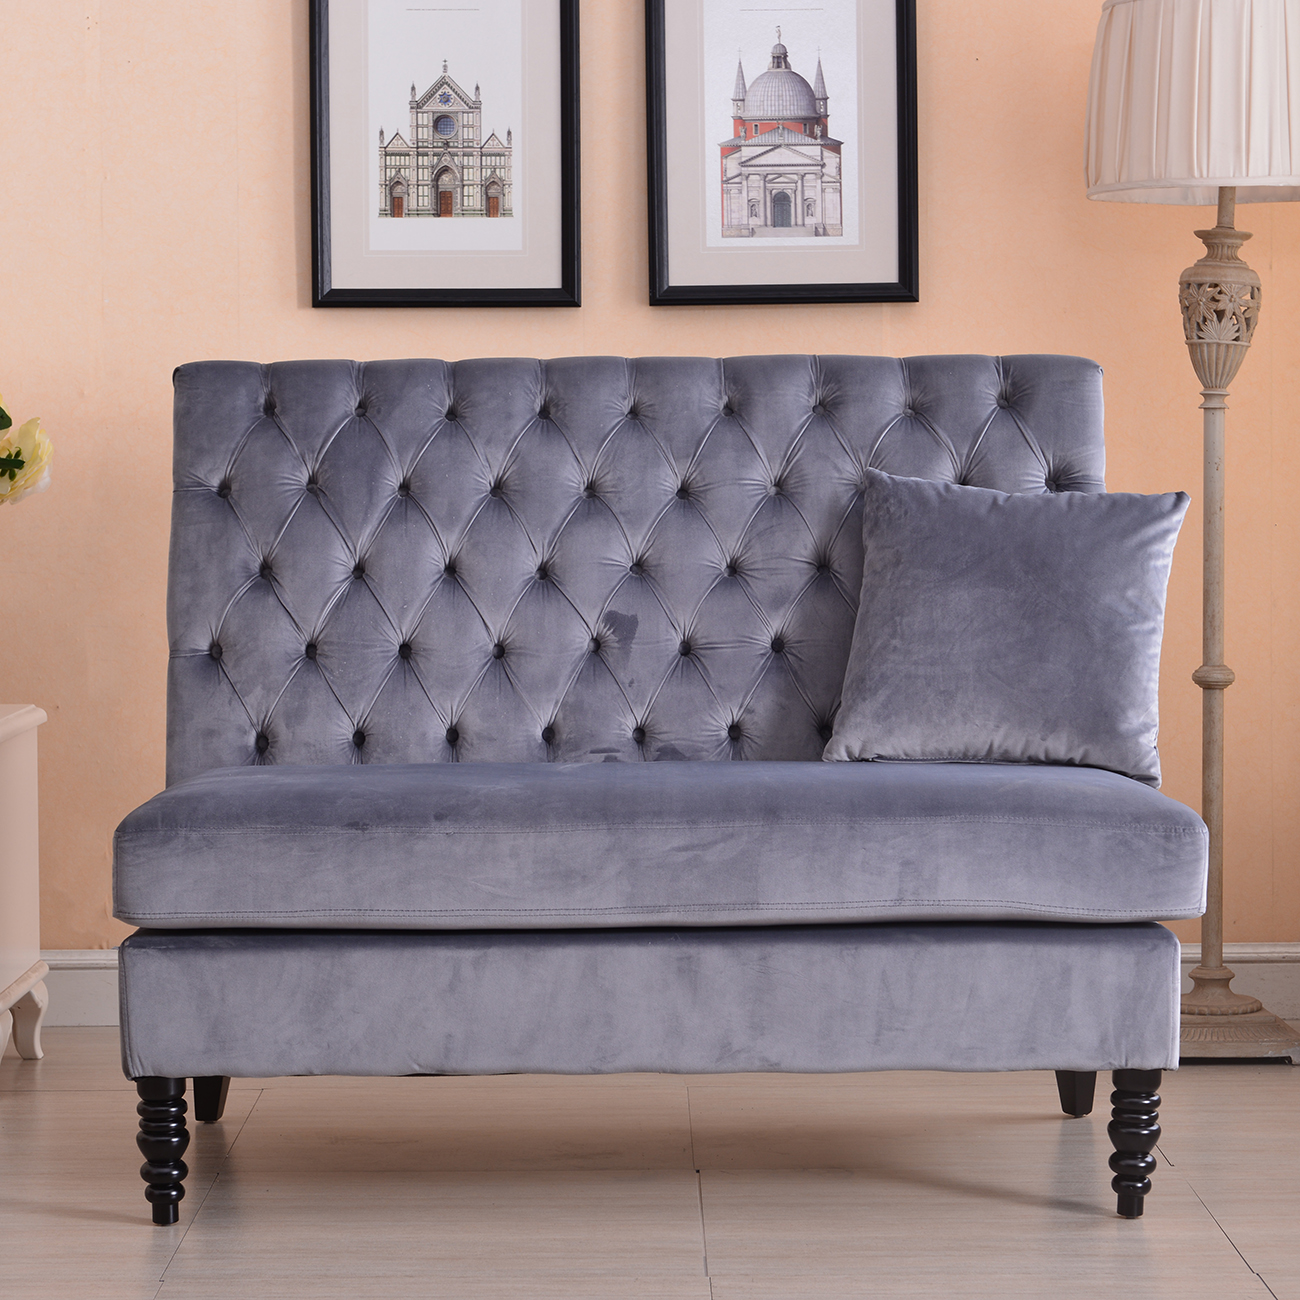 NEW Modern Tufted Settee Bedroom Bench Sofa High